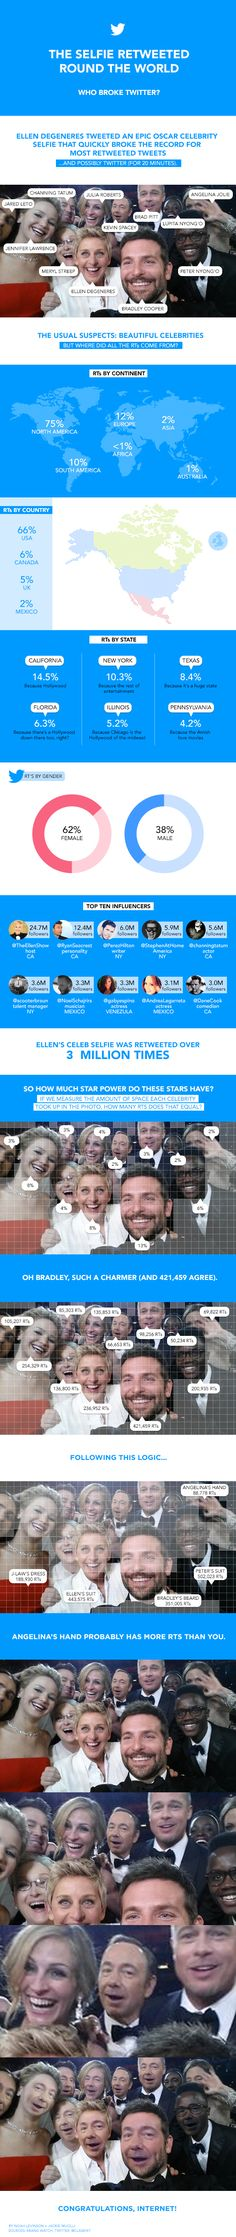 The #Selfie Retweeted Round The World - #infographic #OSCAR